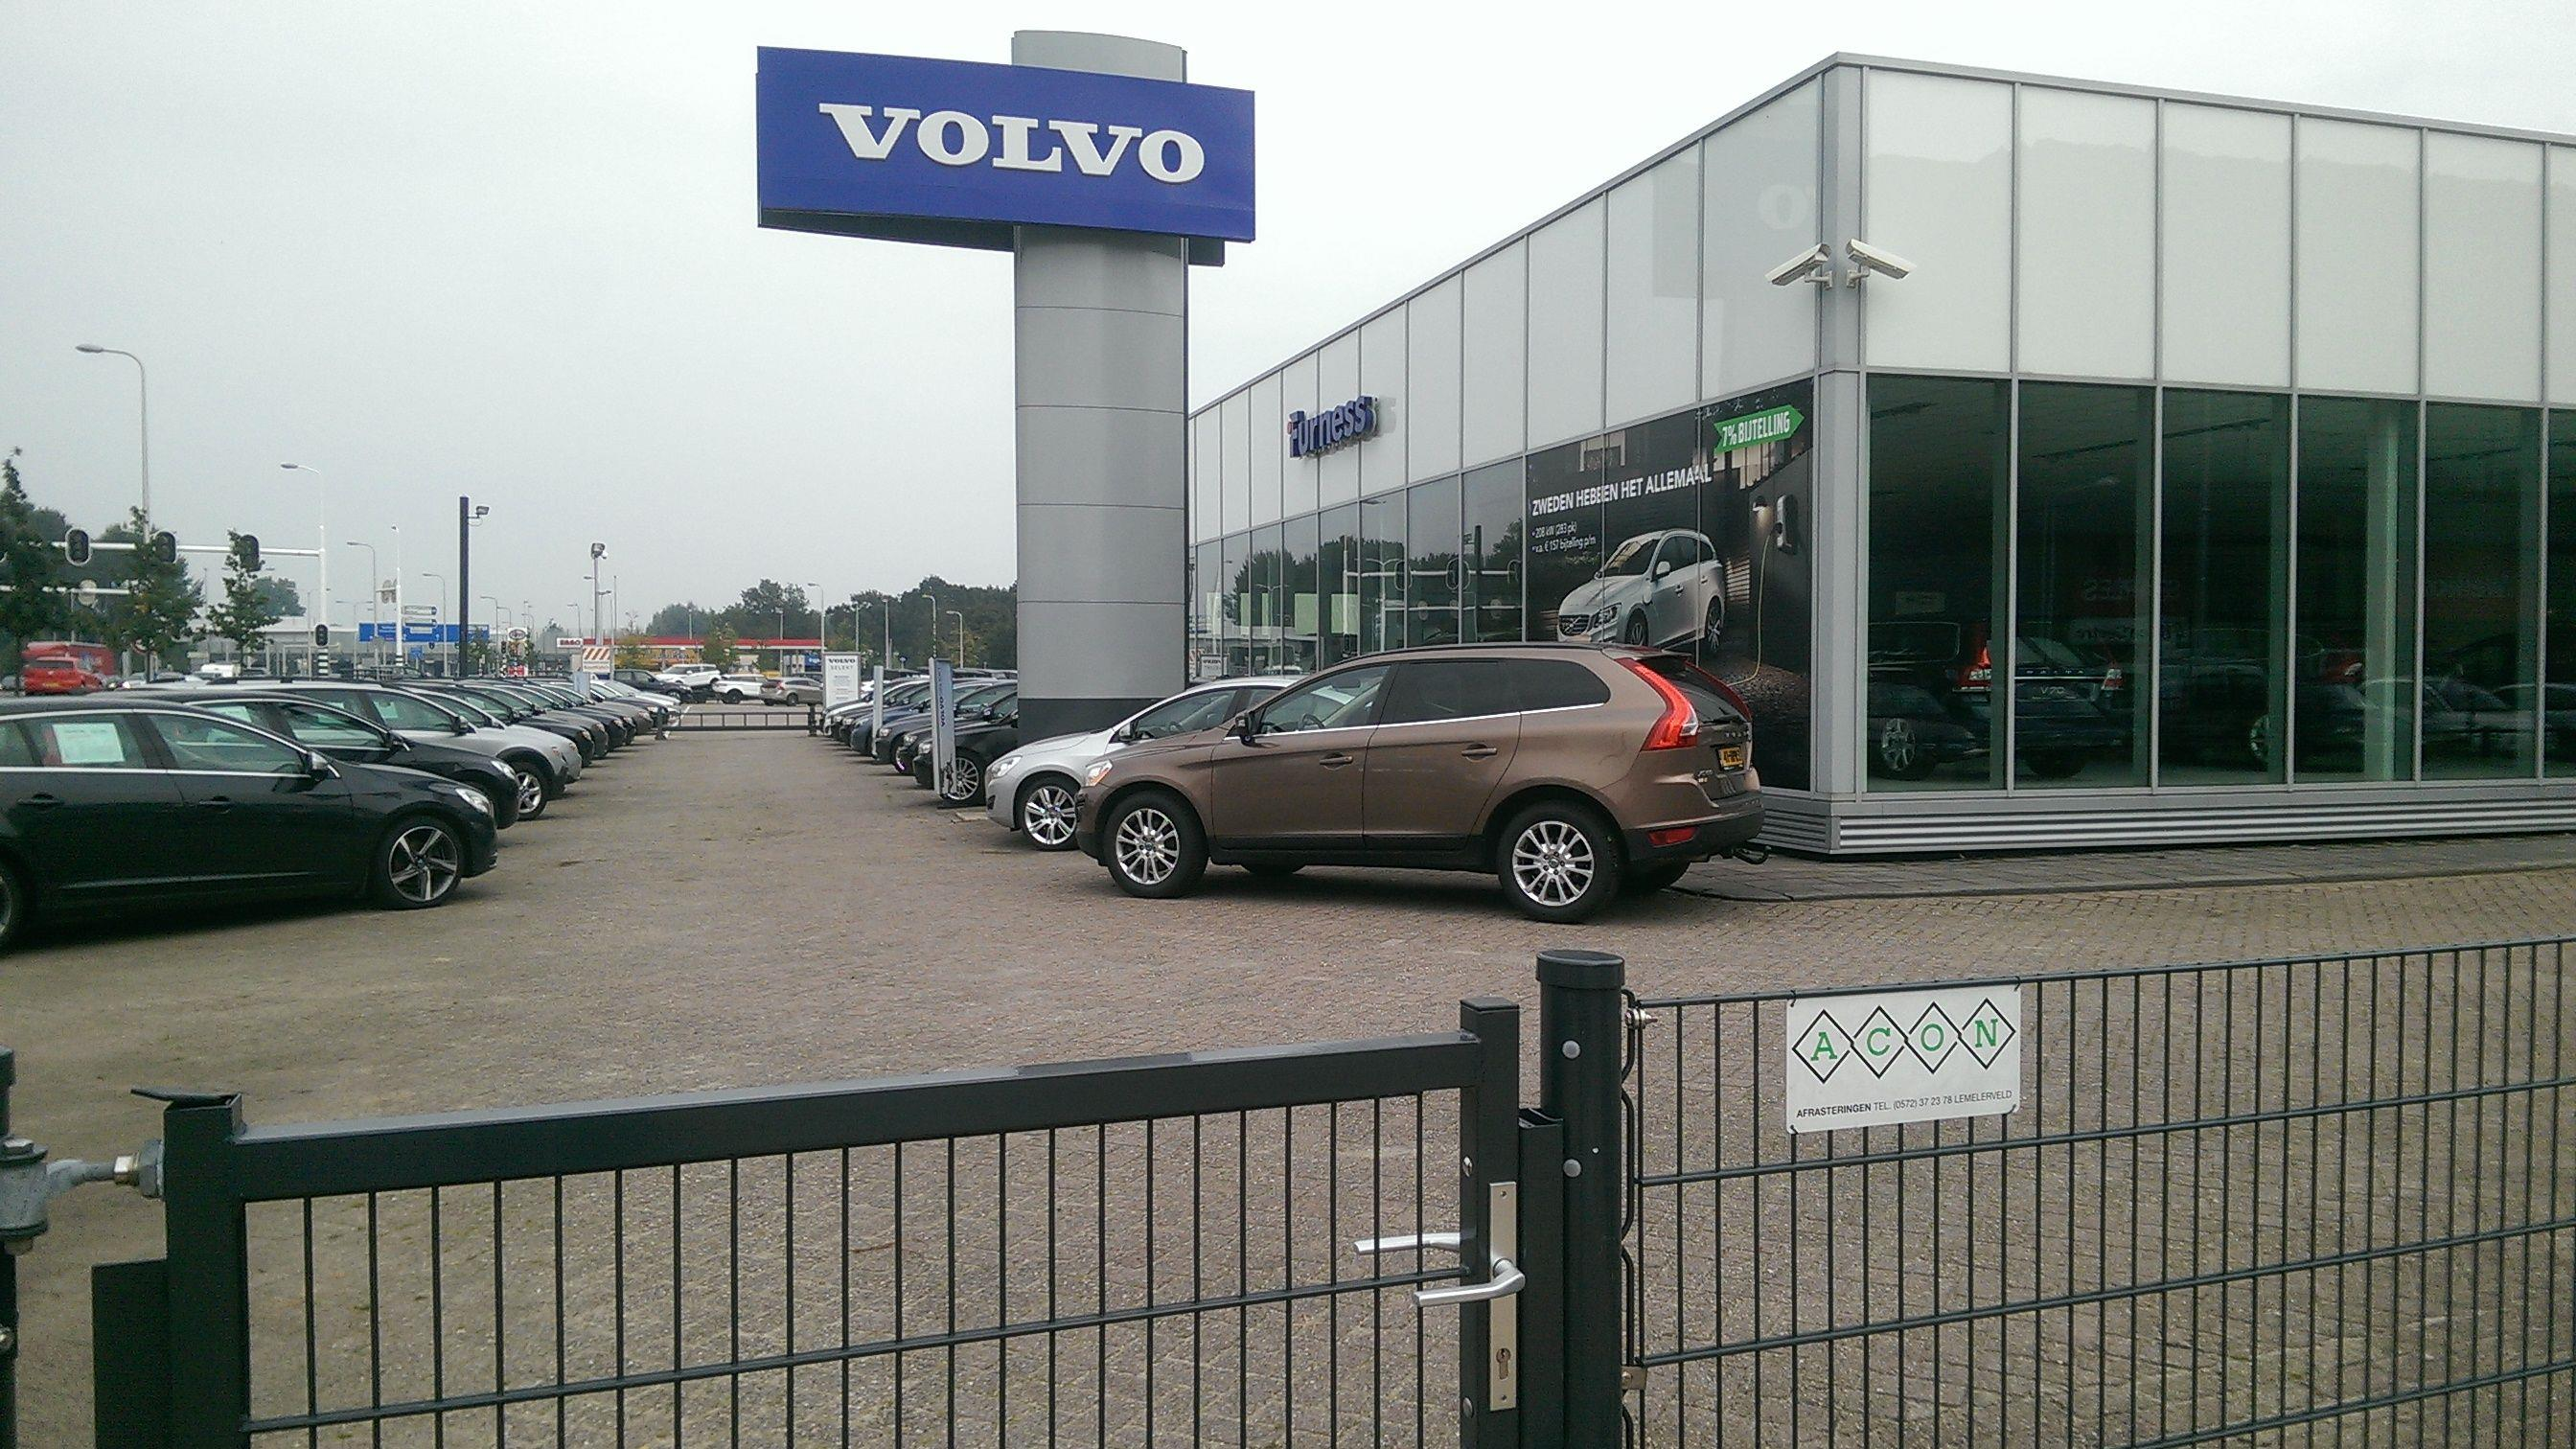 Opening volvo garage in zwolle weer vertraagd curator for Garage volvo bourgoin jallieu